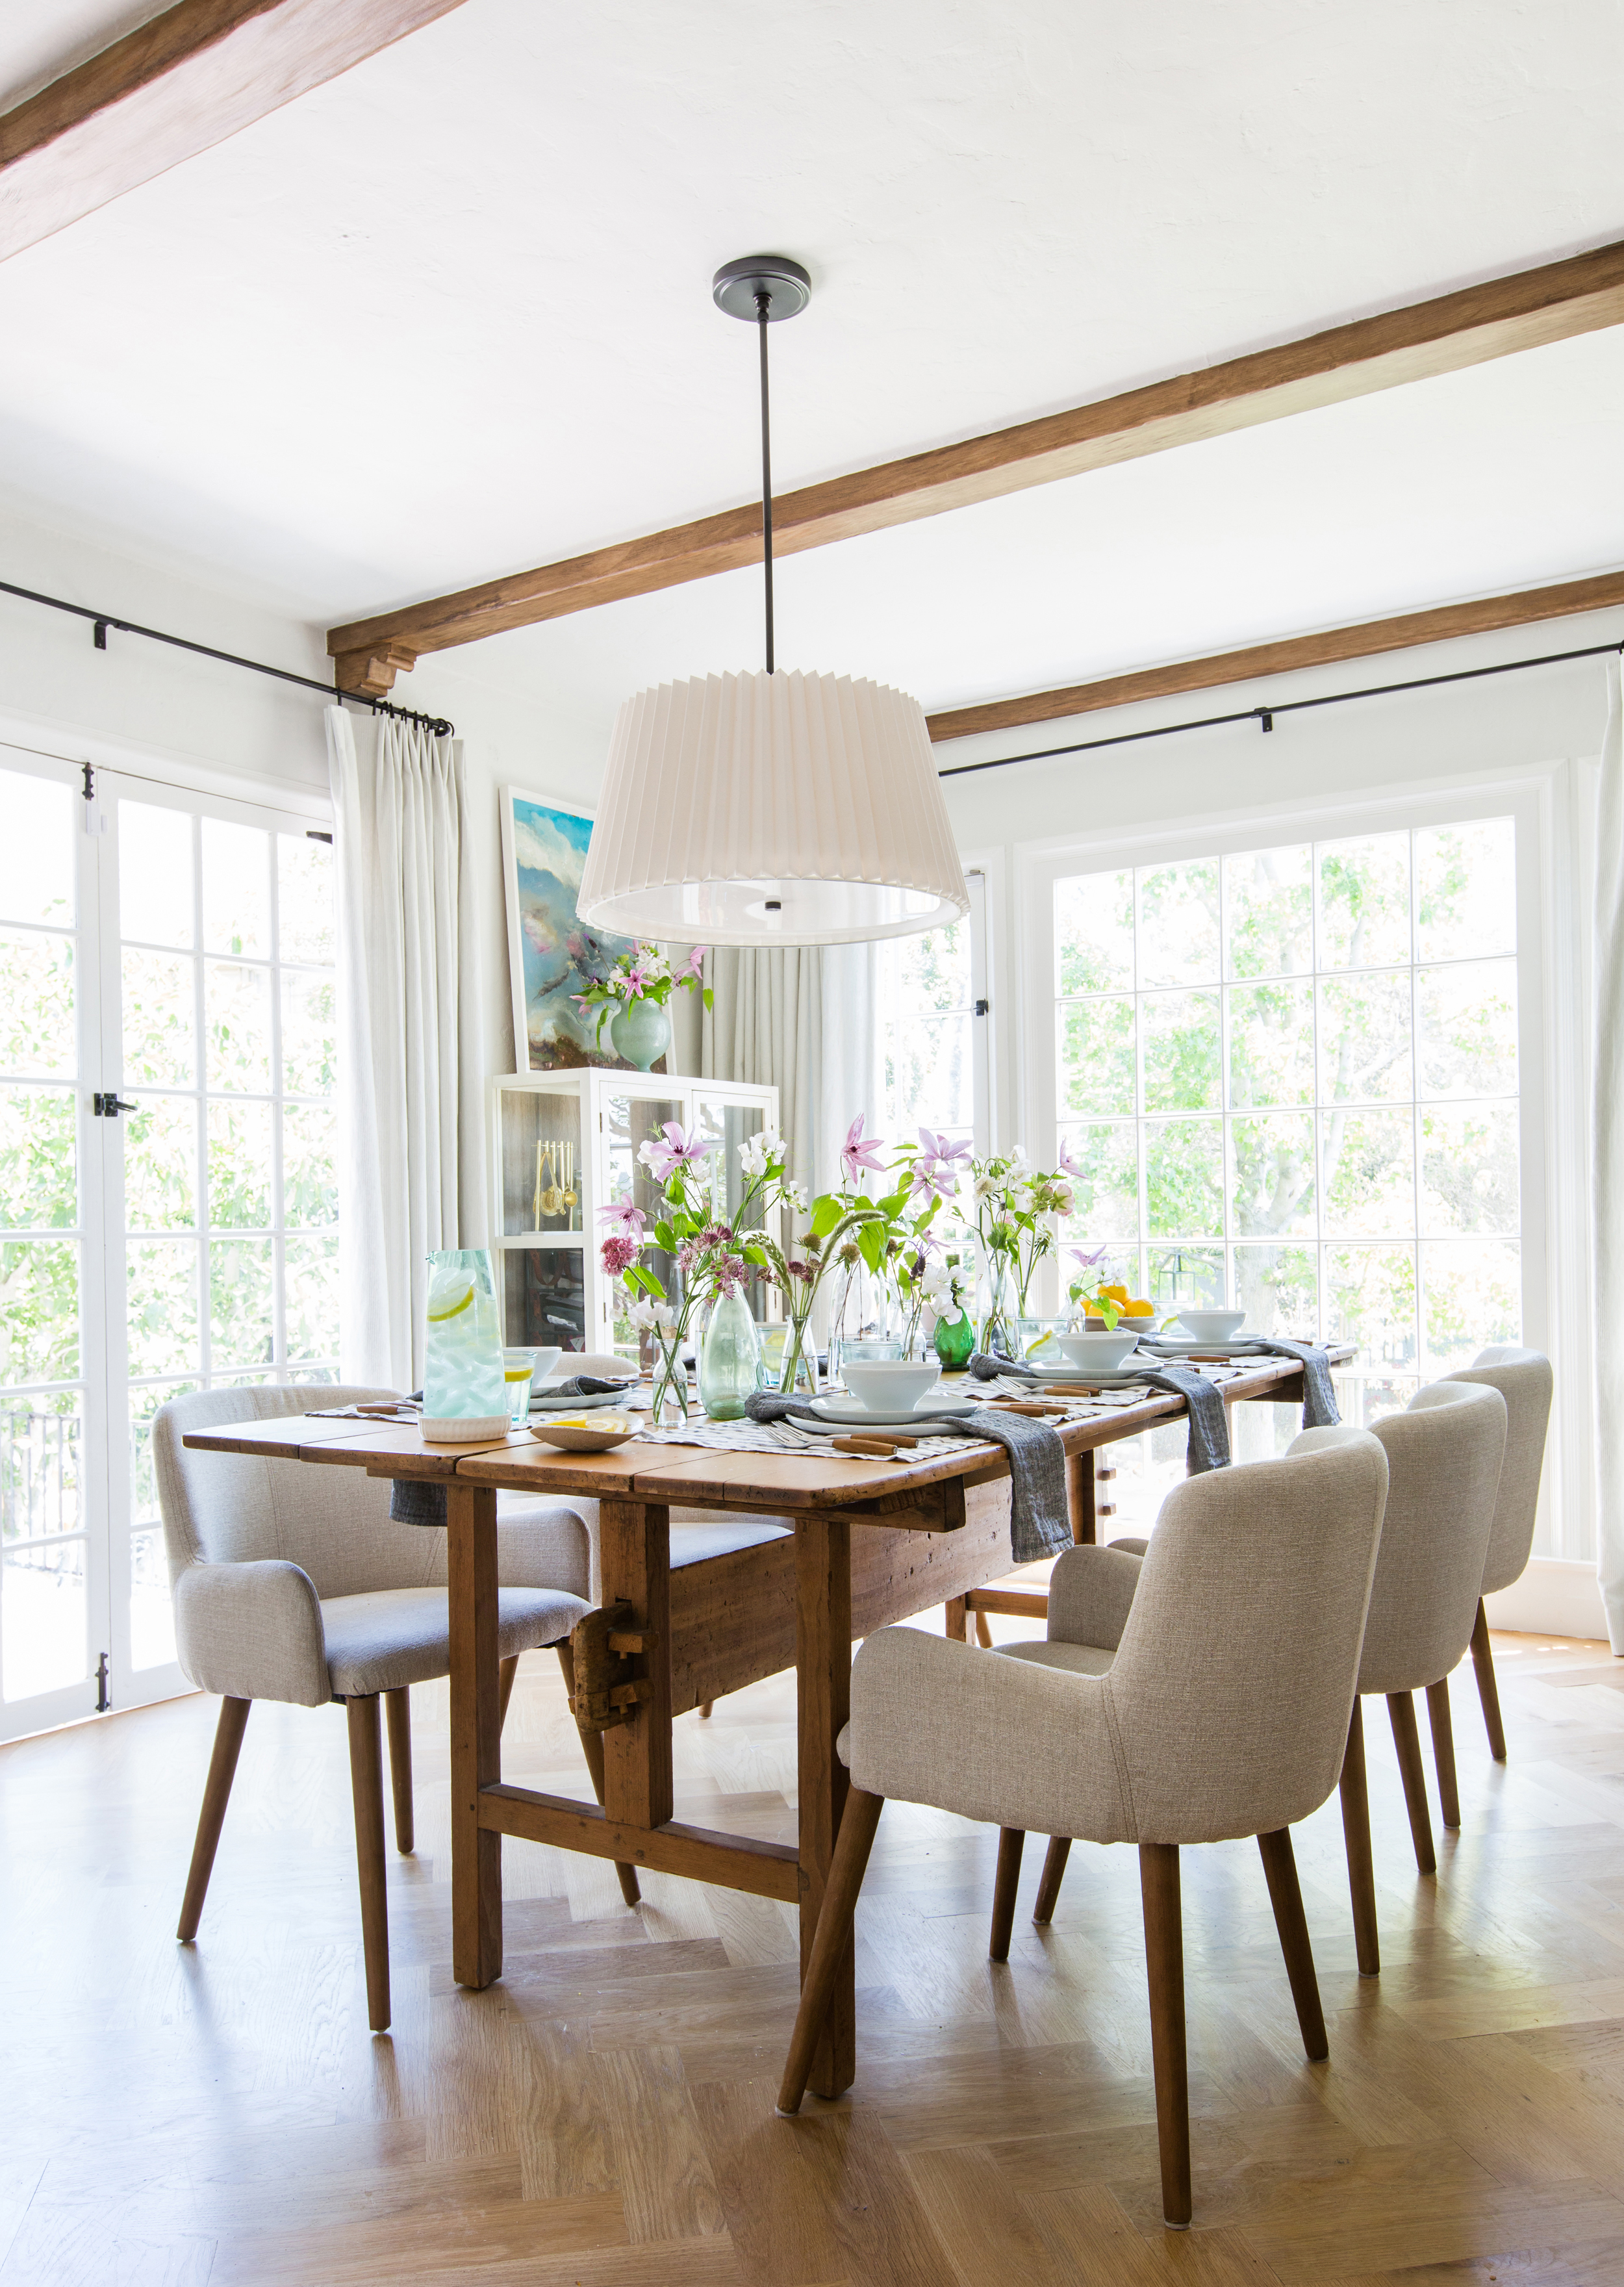 Dining Room Rules The Cheat Sheet You've Been Waiting For 4